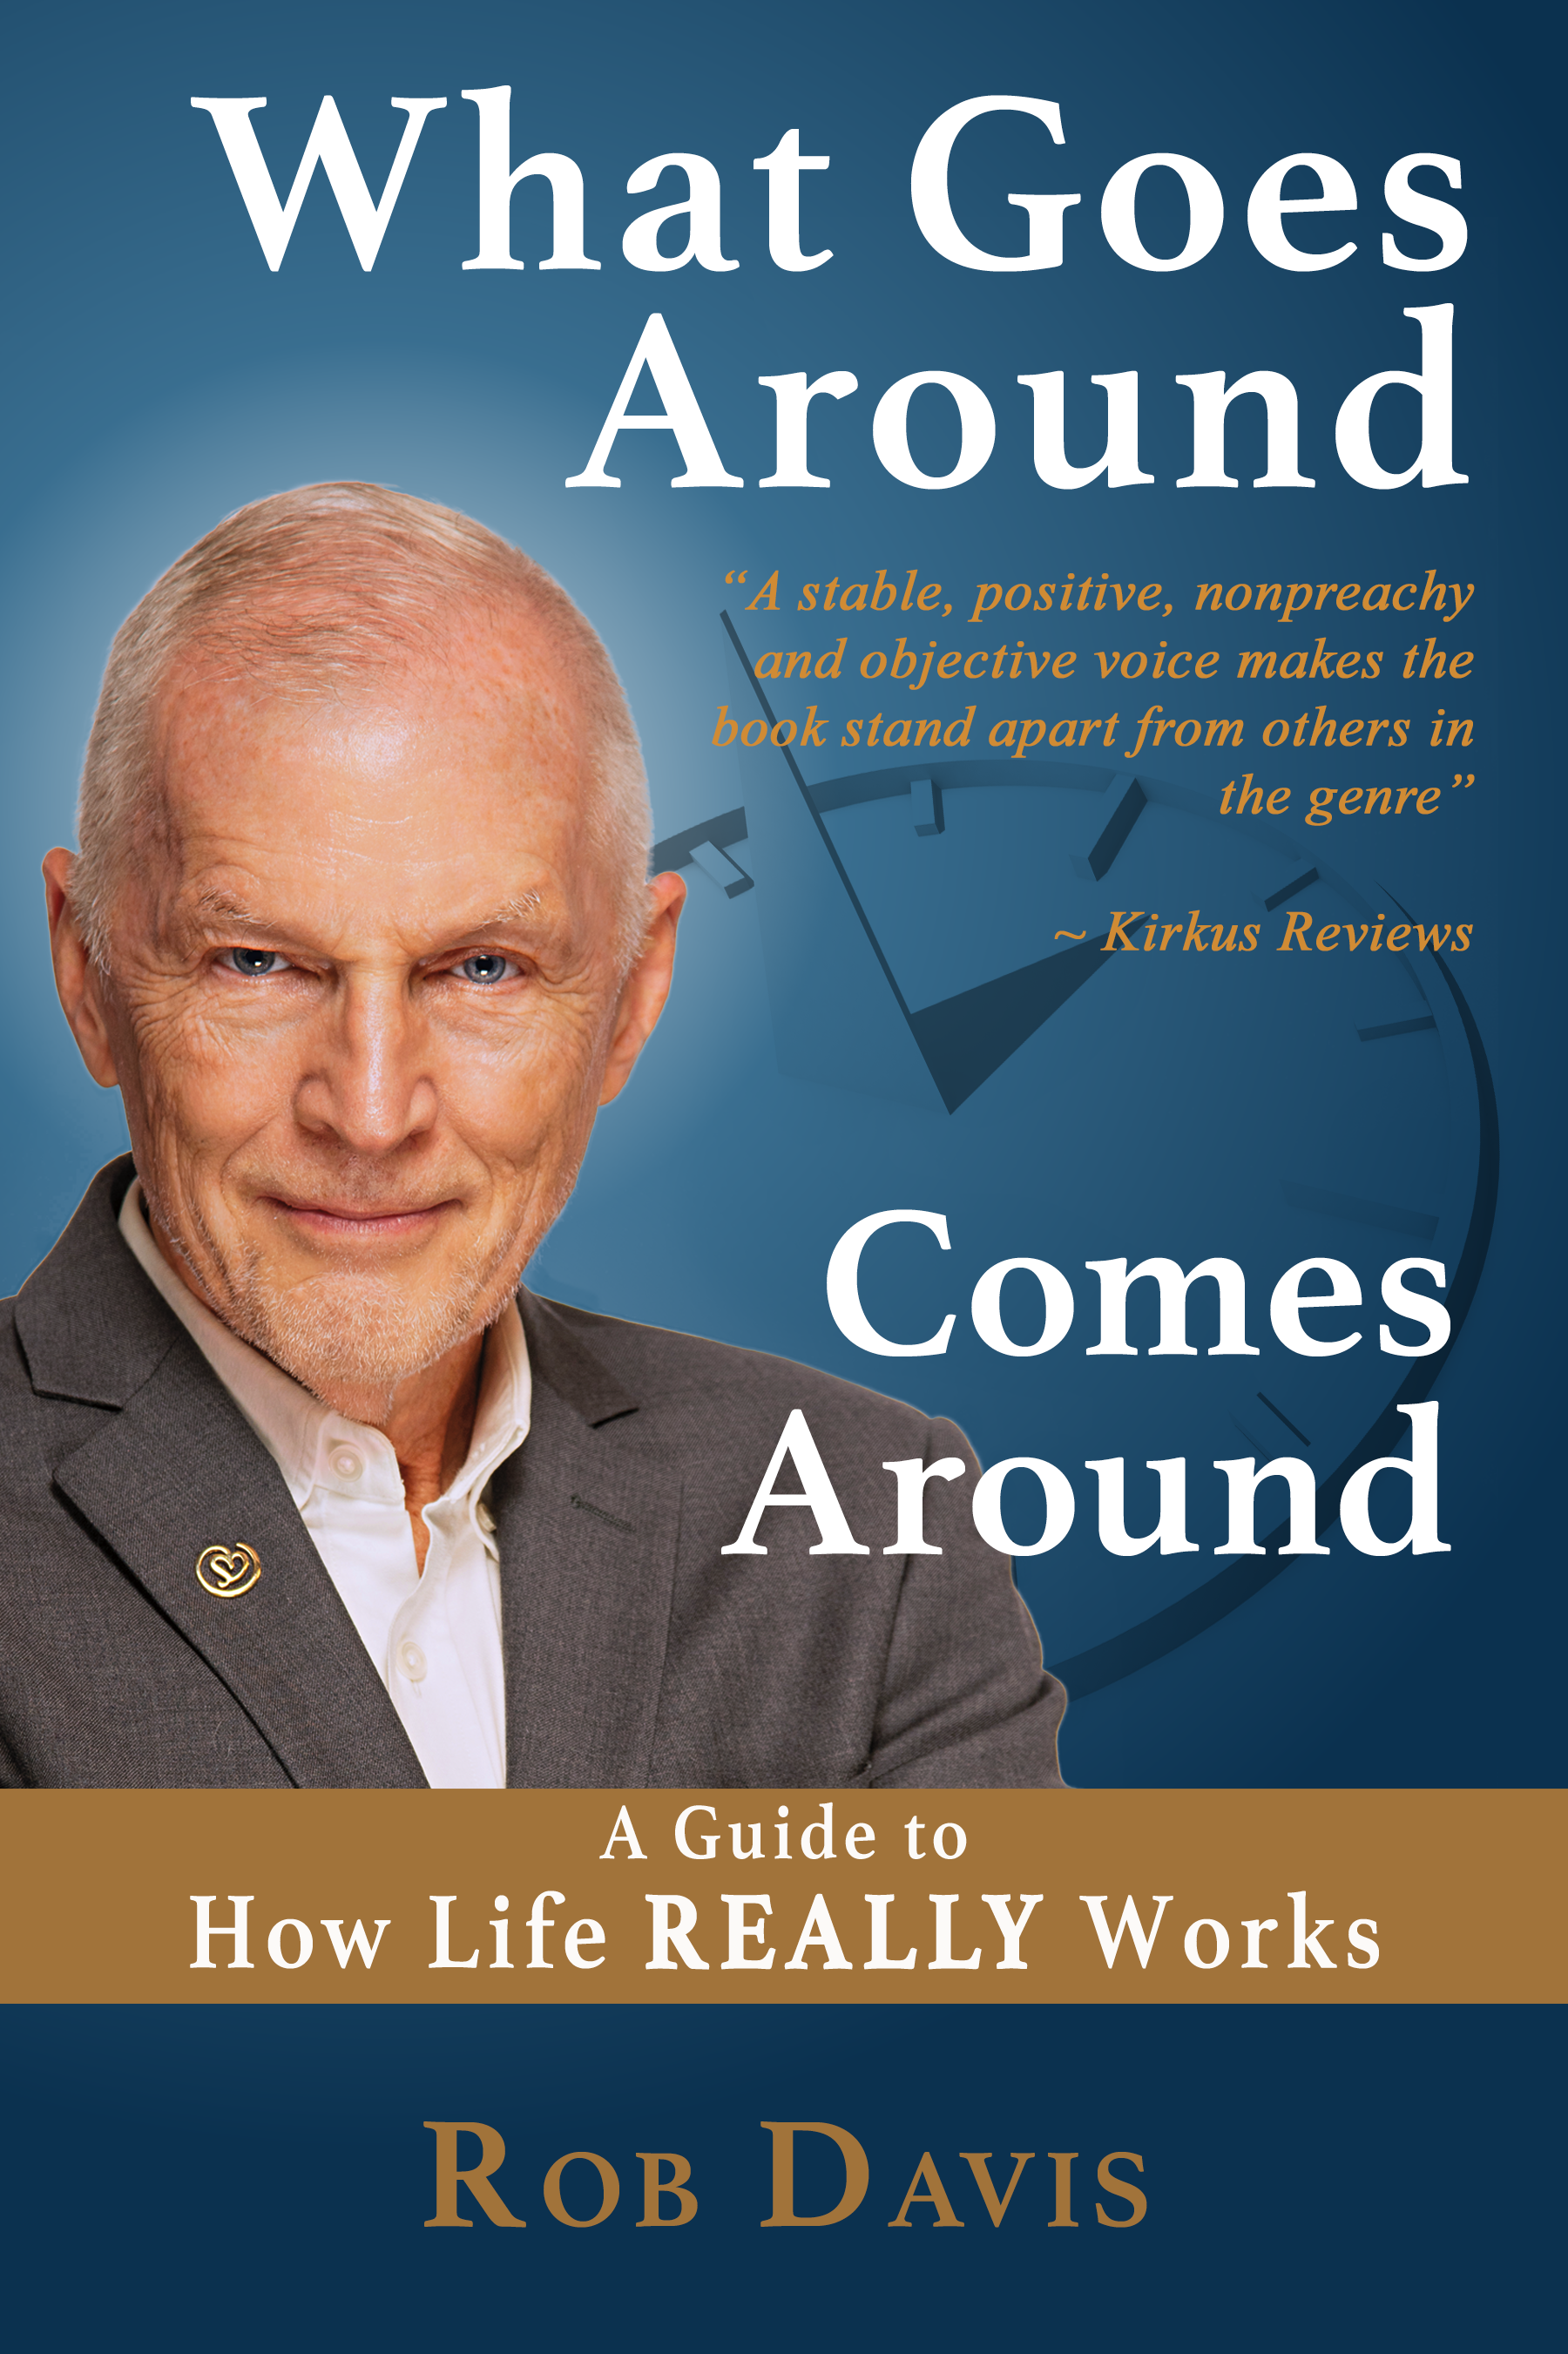 What Goes Around Comes Around Book Covers